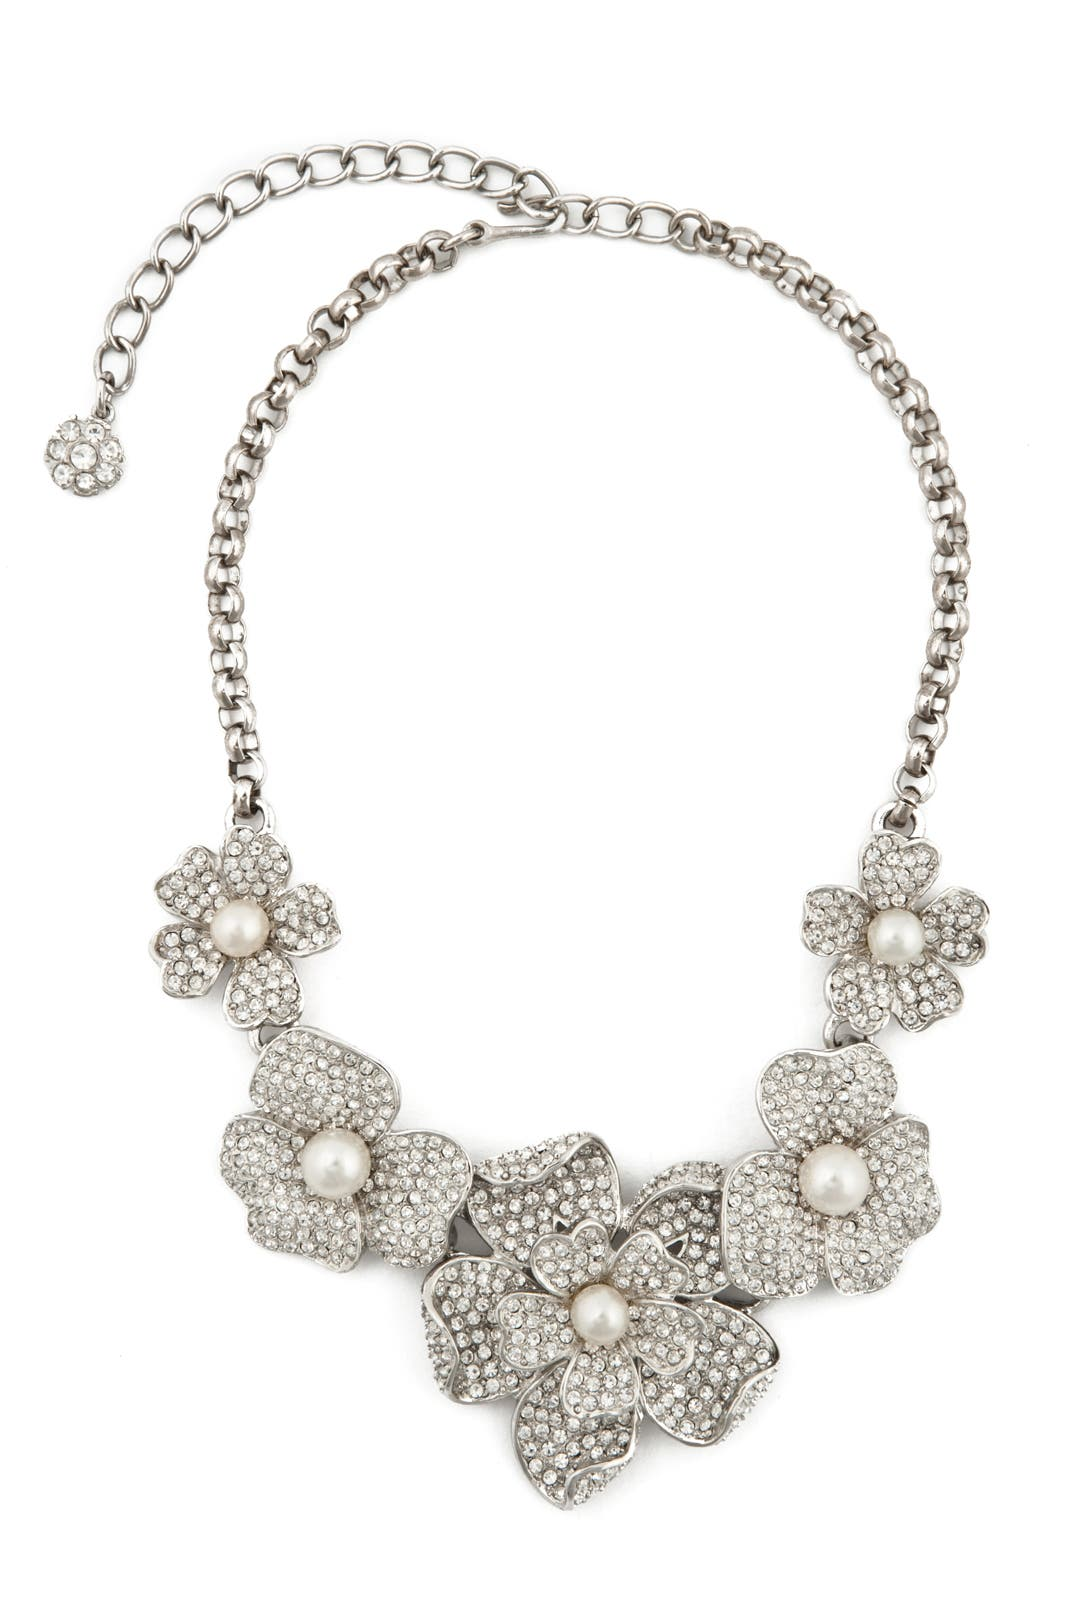 A-List Necklace by Kenneth Jay Lane